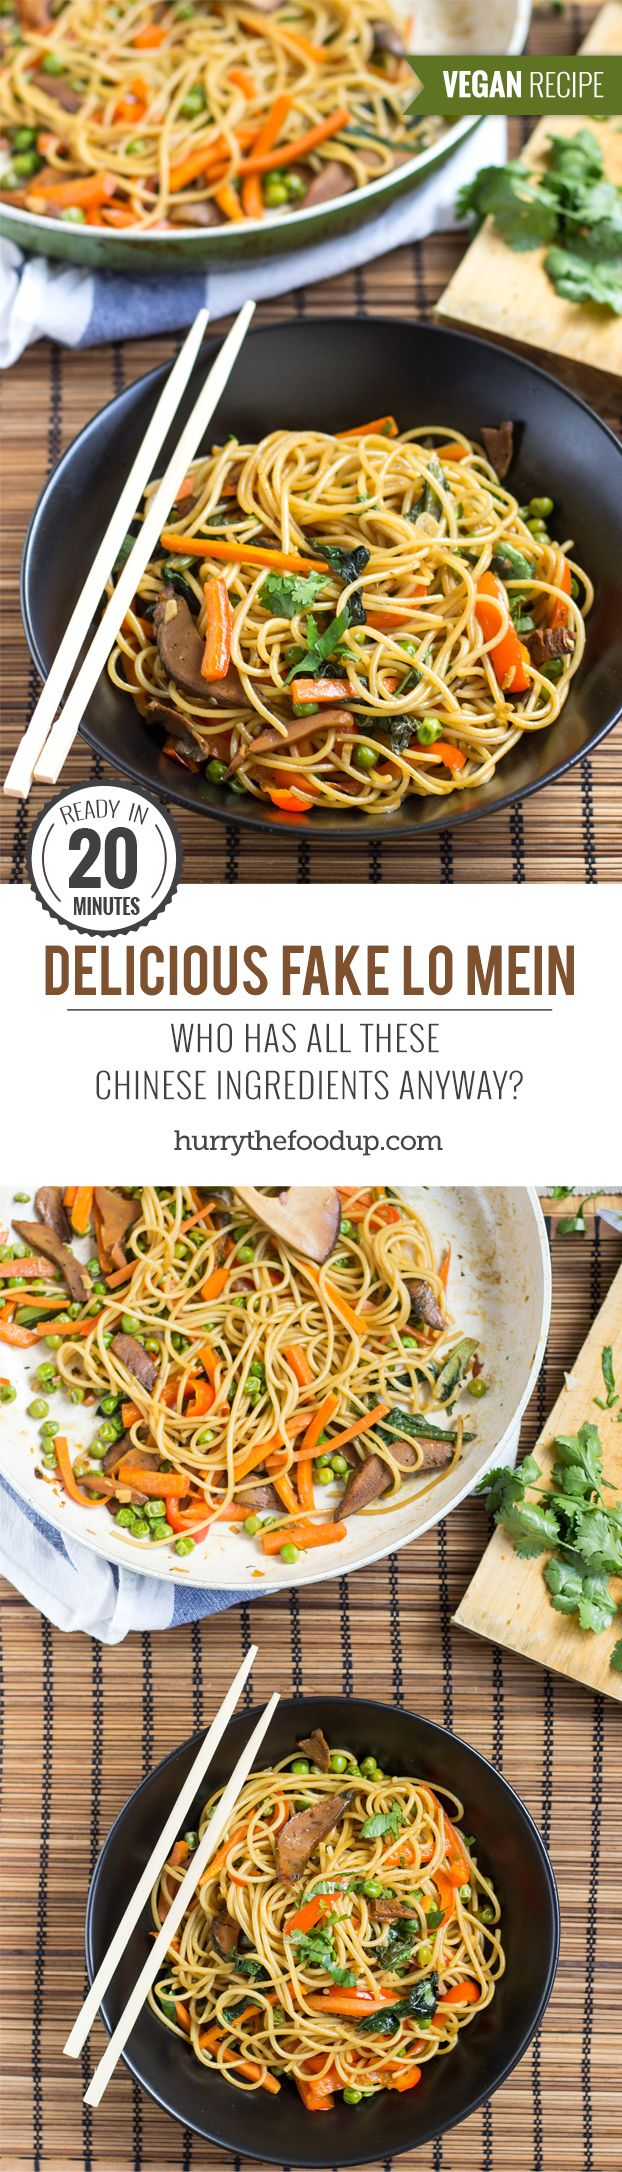 Delicious Fake Lo Mein. Ready in 20 minutes | #dinner #vegan | hurrythefoodup.com